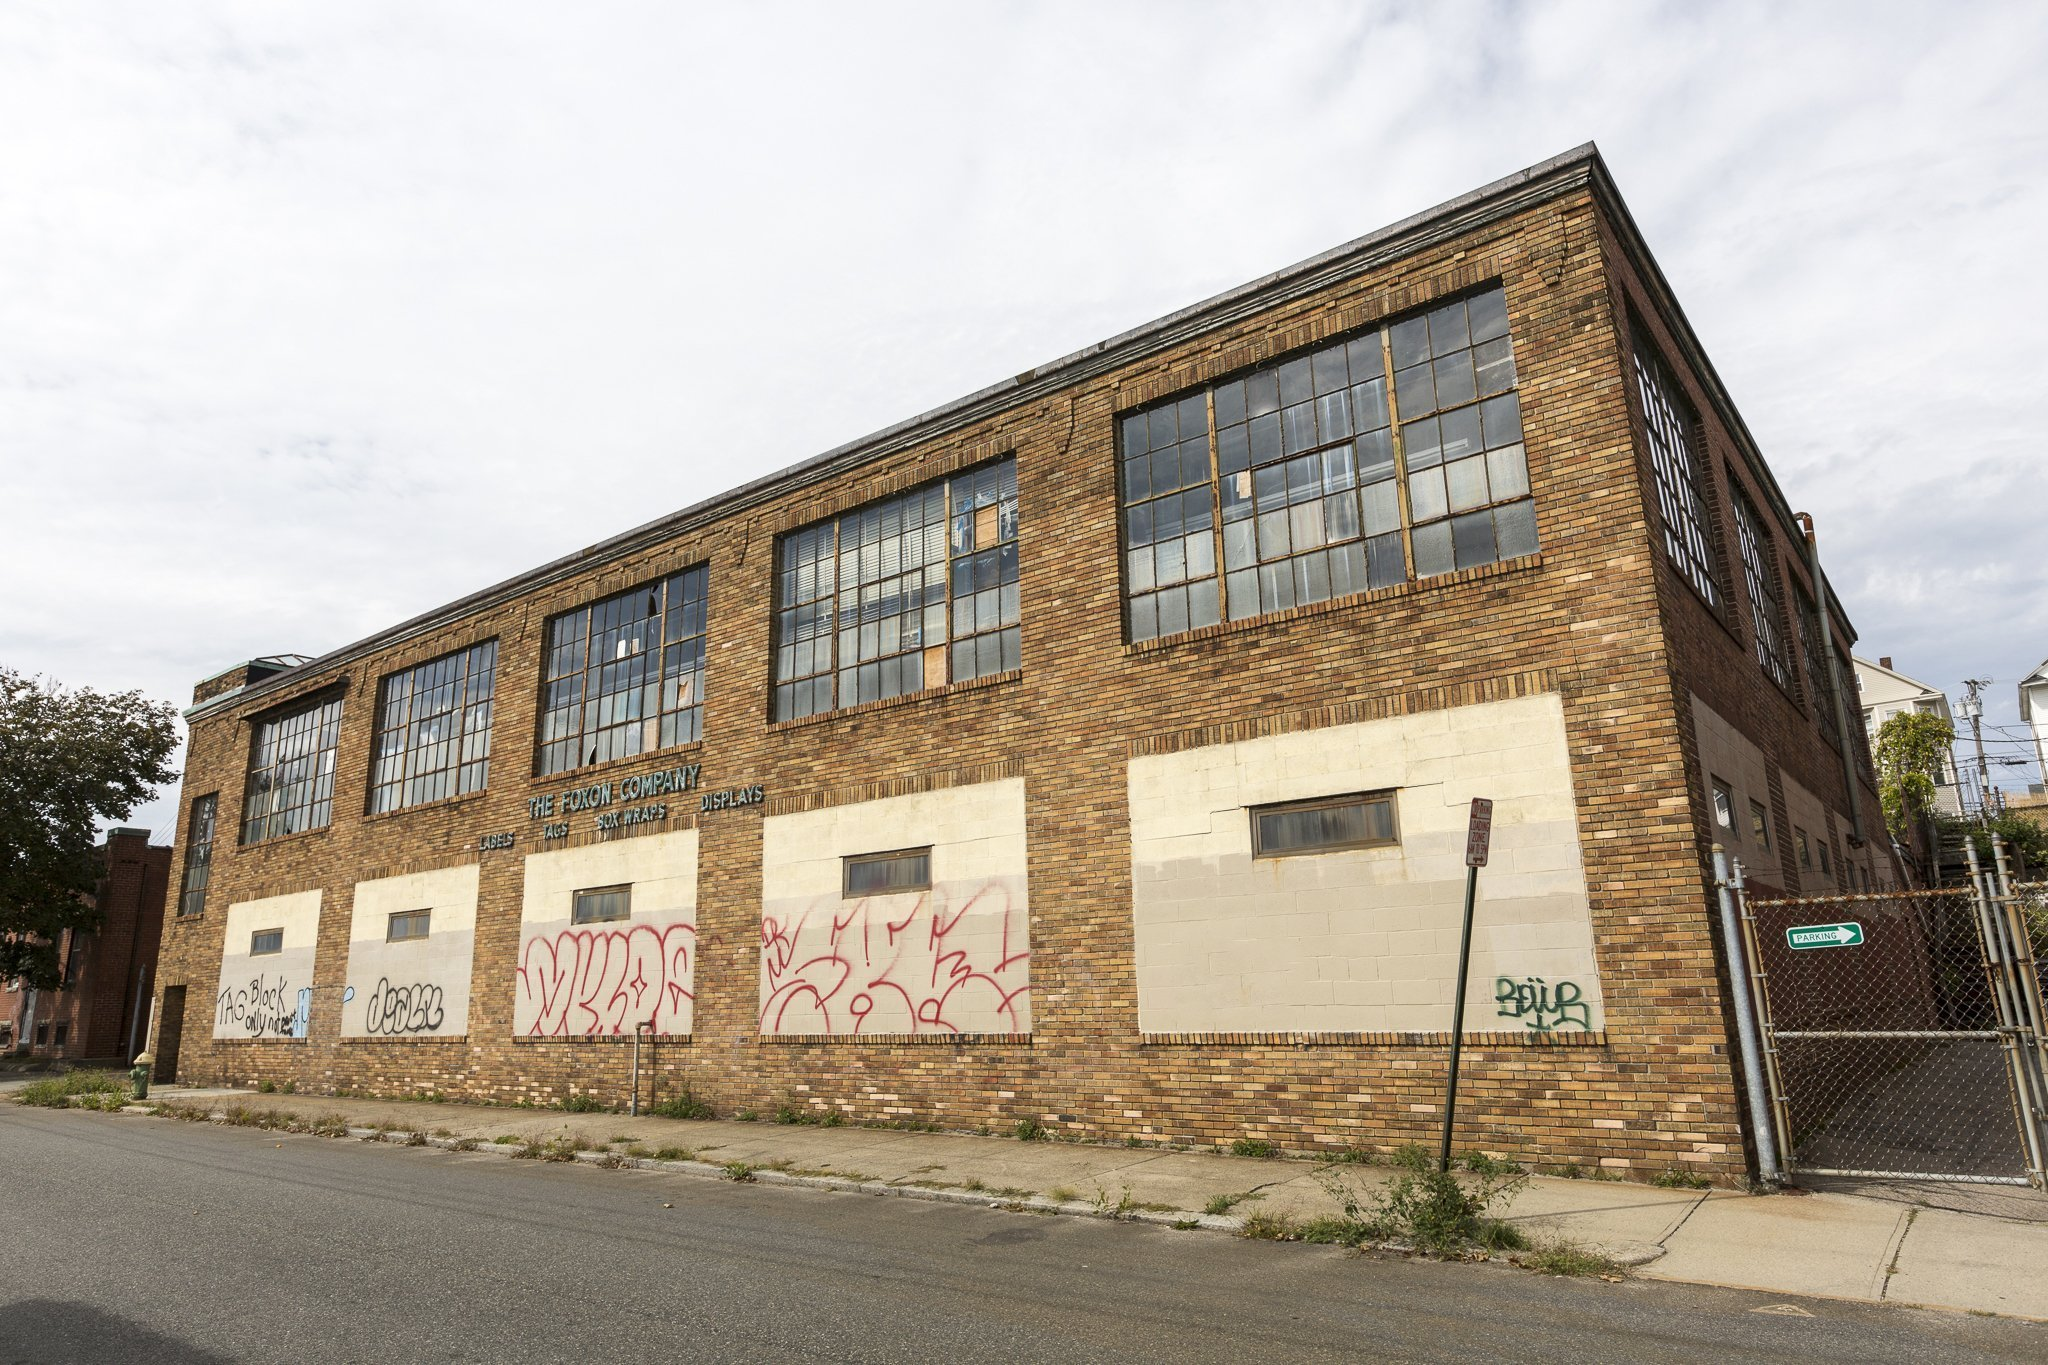 Exterior of 235 West Park St., future home of the West Park Food Hall